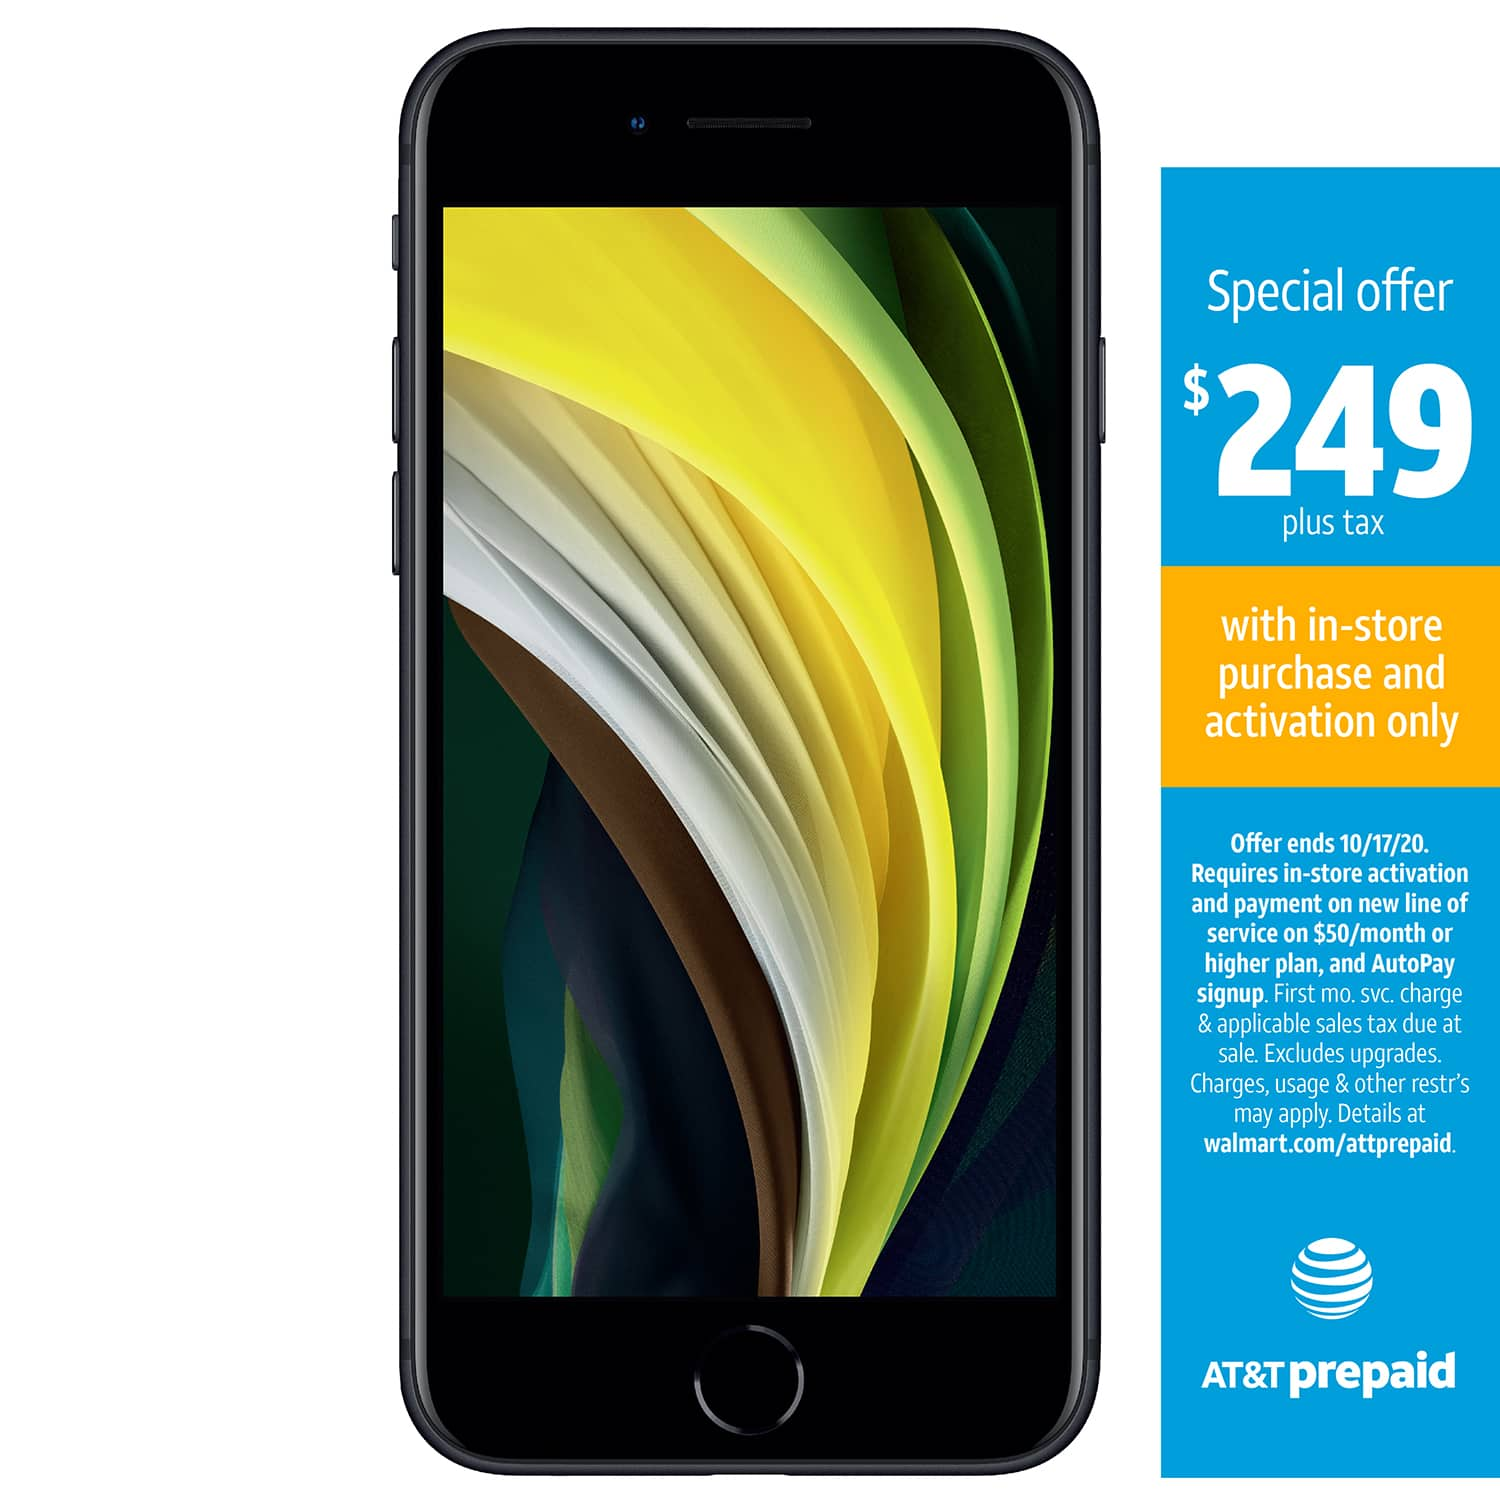 AT&T Prepaid 64 GB iPhone SE for $249 when signing up for prepaid plan of $50 or more